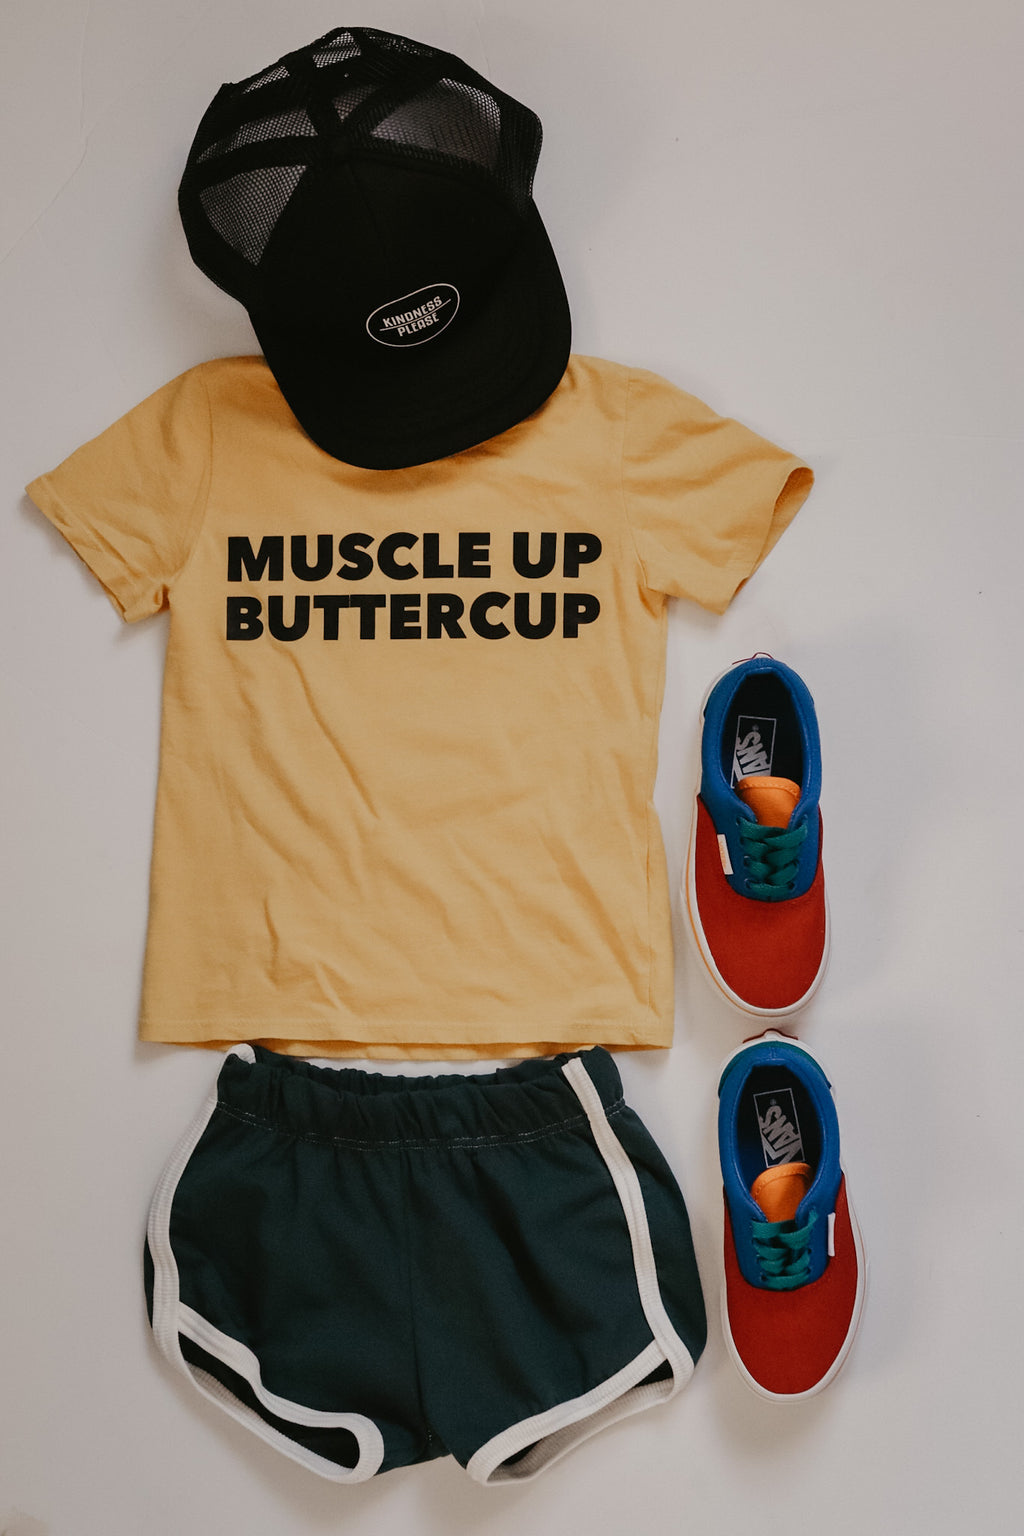 Muscle up buttercup - Sweatshirt